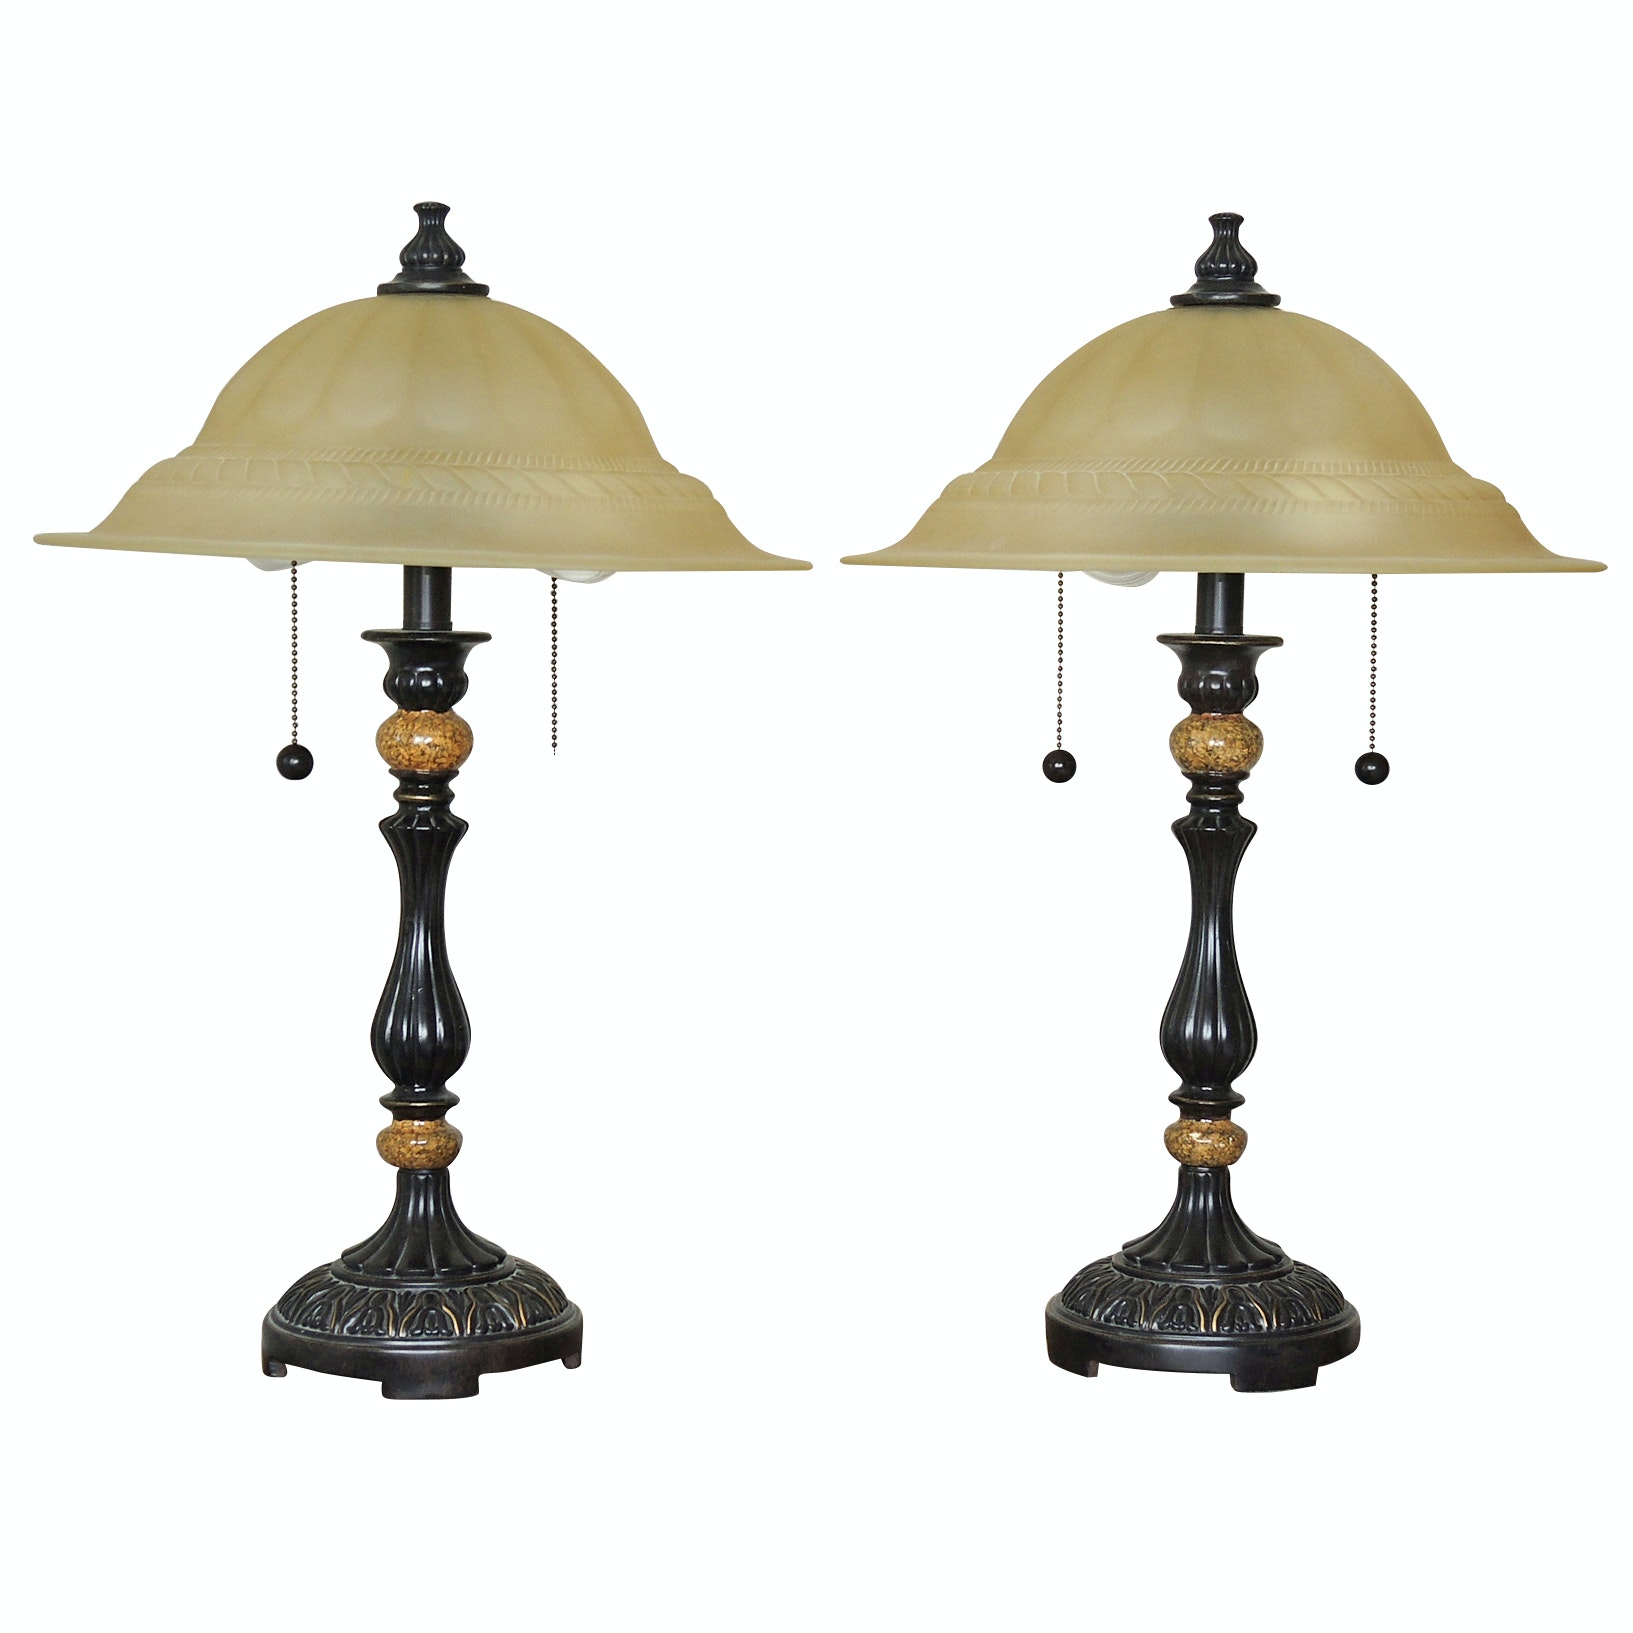 Table Lamps with Glass Shades and Faux Stone Accents